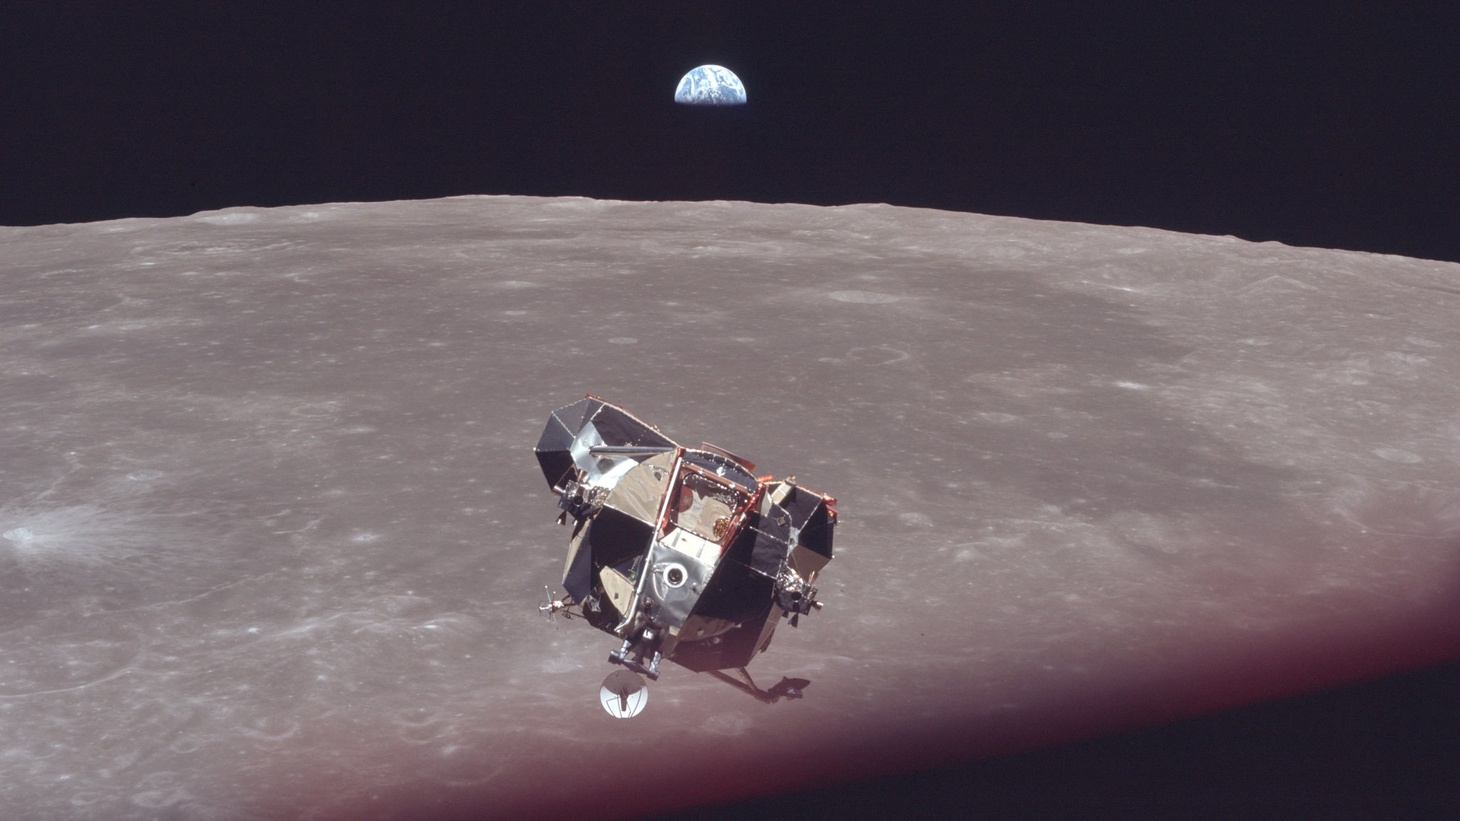 The Apollo 11 lunar lander Eagle returning to the Columbia command module for the journey back to Earth.